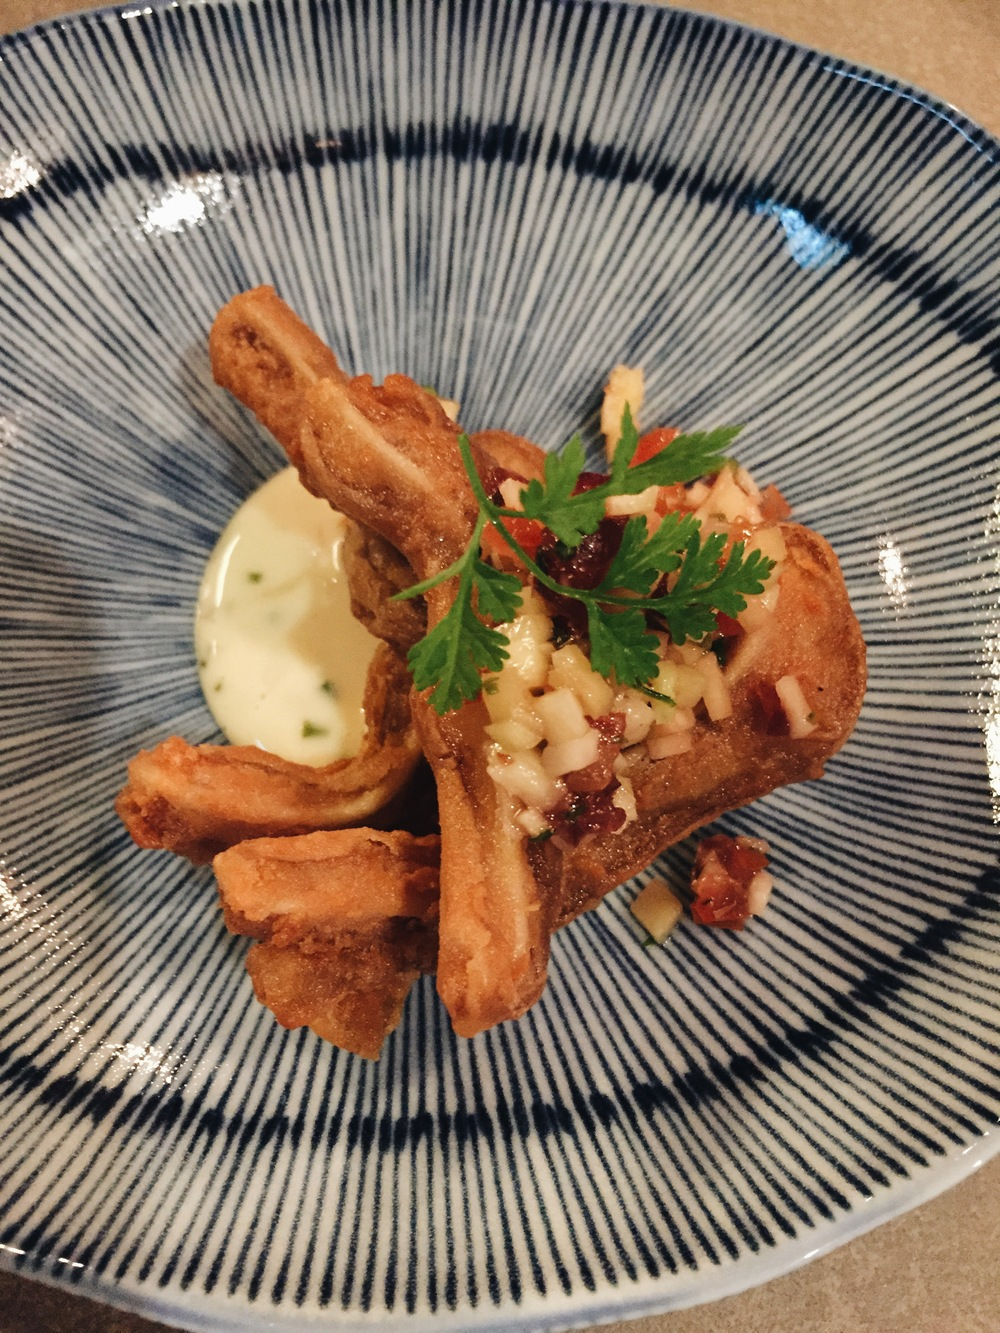 Har cheong gai - pig ears in shrimp paste batter house tartar sauce.